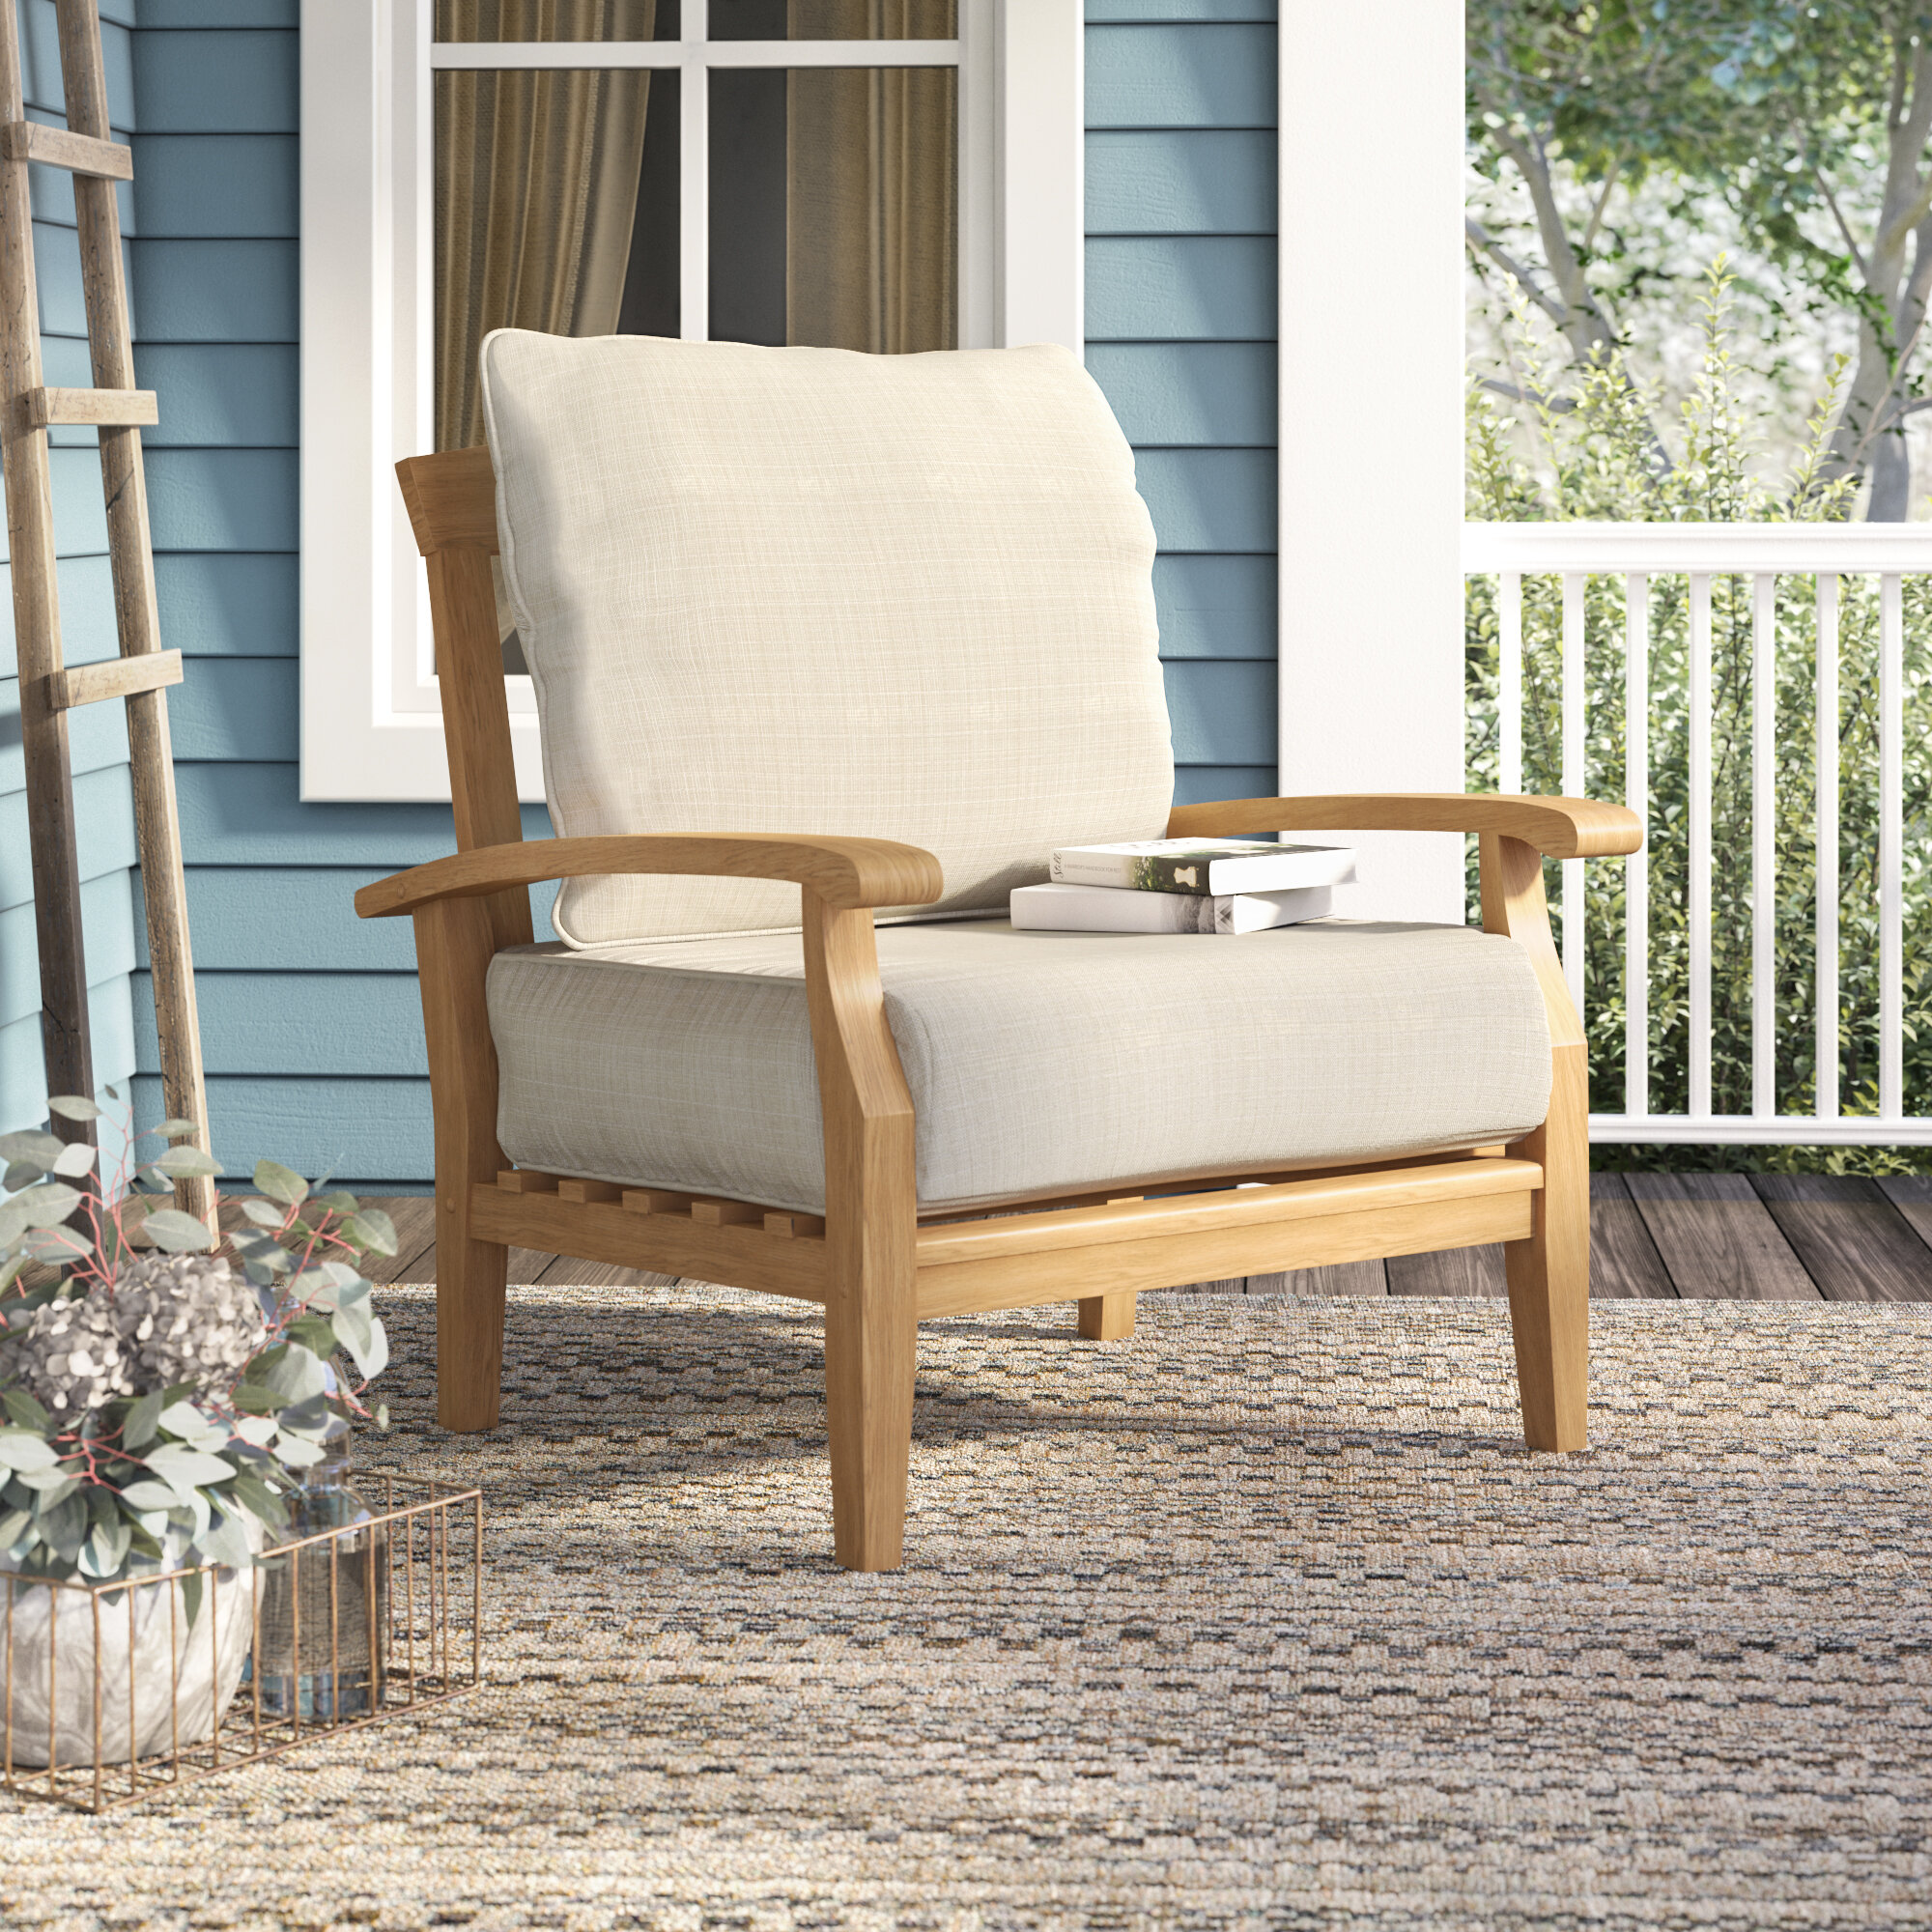 Birch lane heritage summerton teak patio chair with cushions reviews birch lane